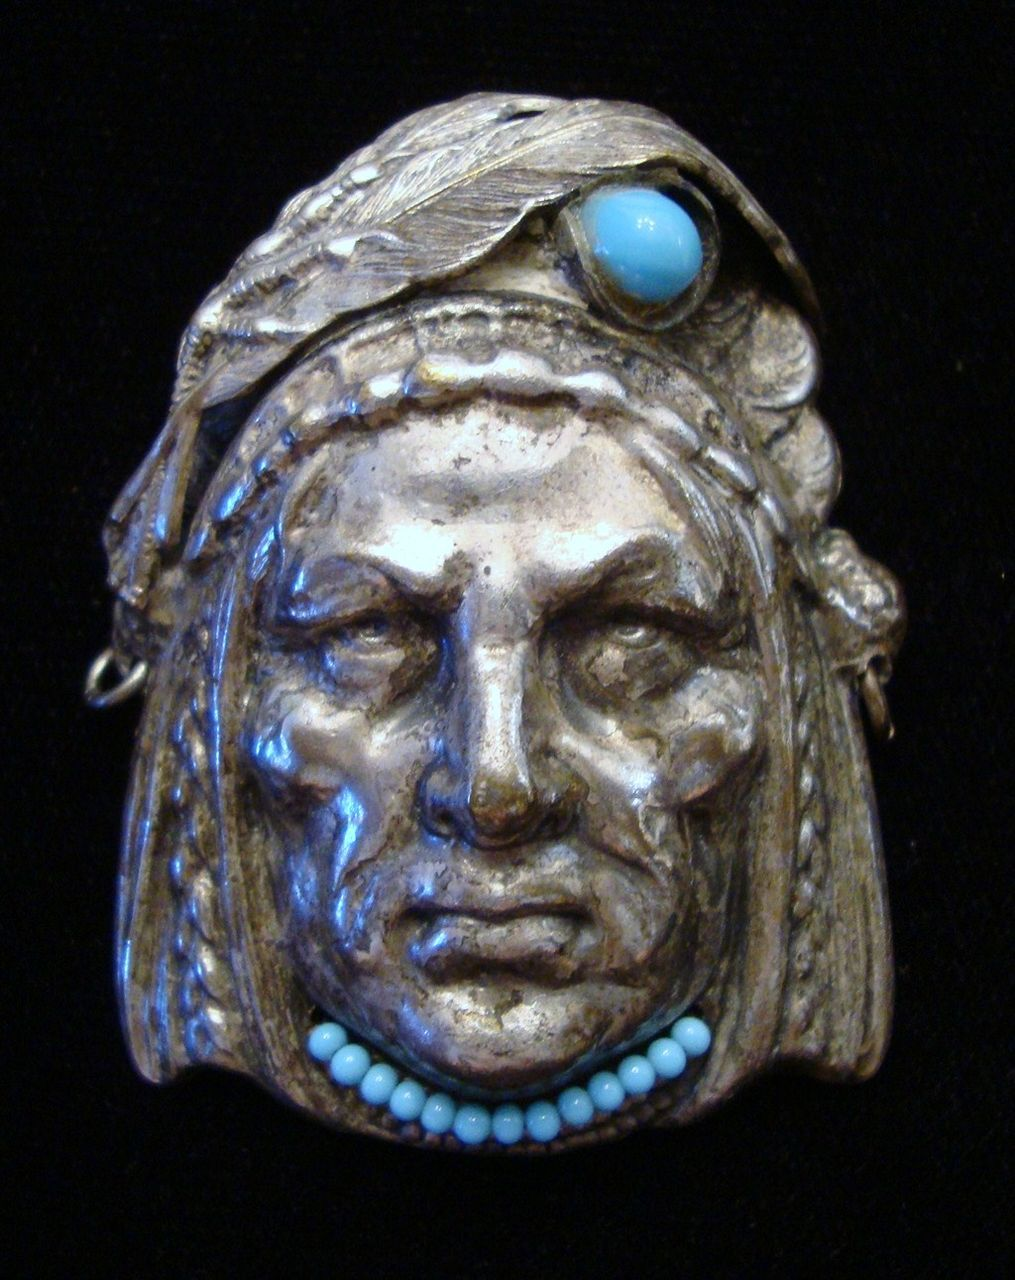 Fabulous American Indian Figural Brooch with Turquoise Colored Beads